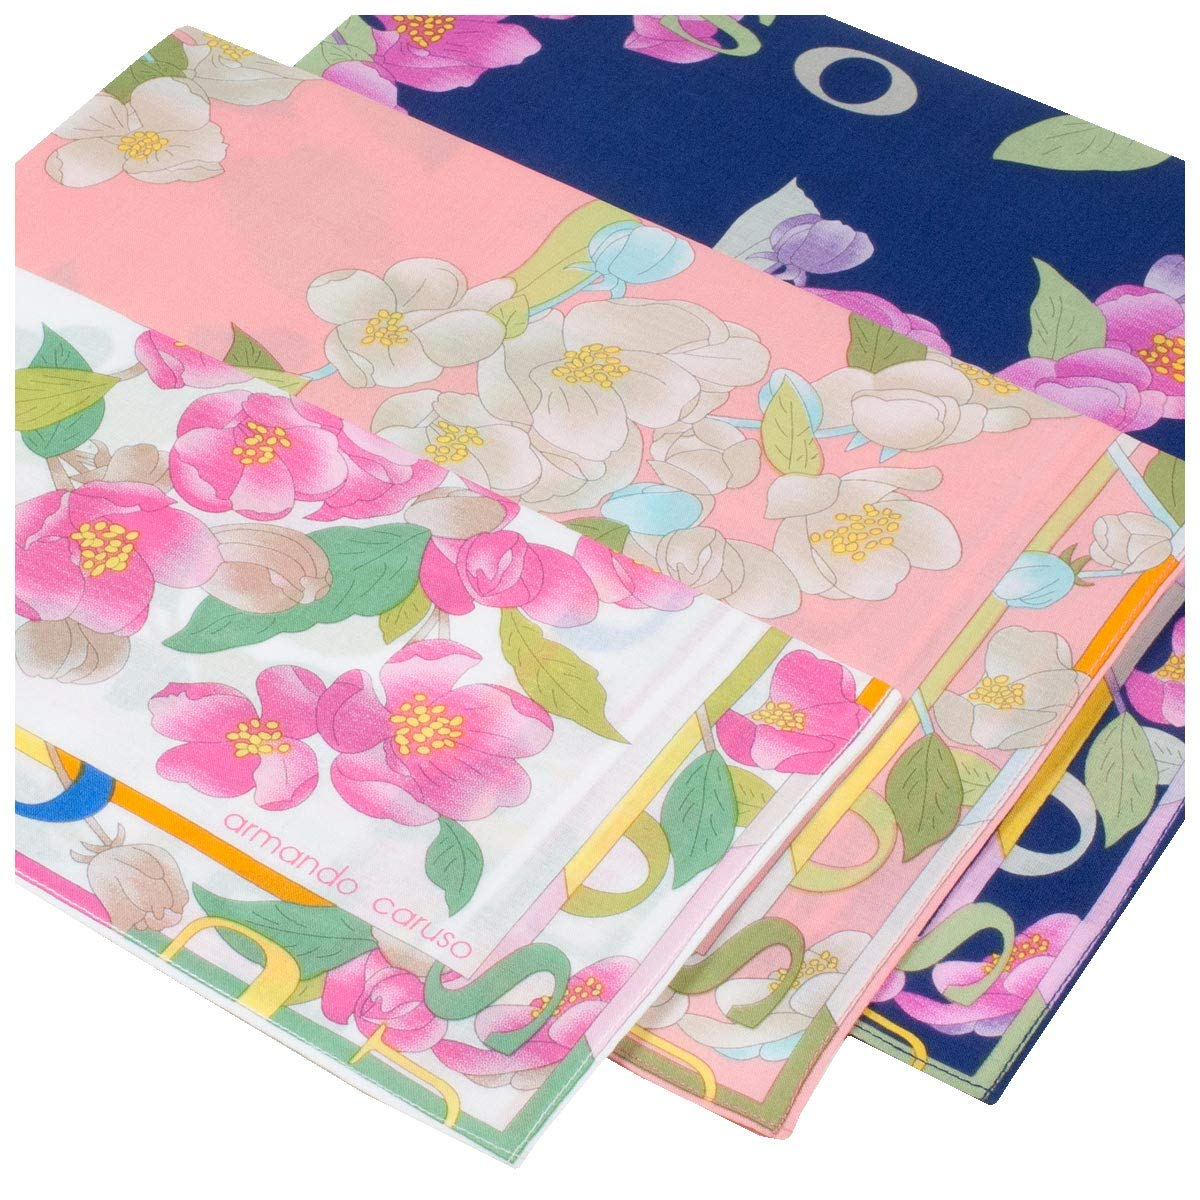 ' Tonami ' Flowered Hankerchiefs - 17